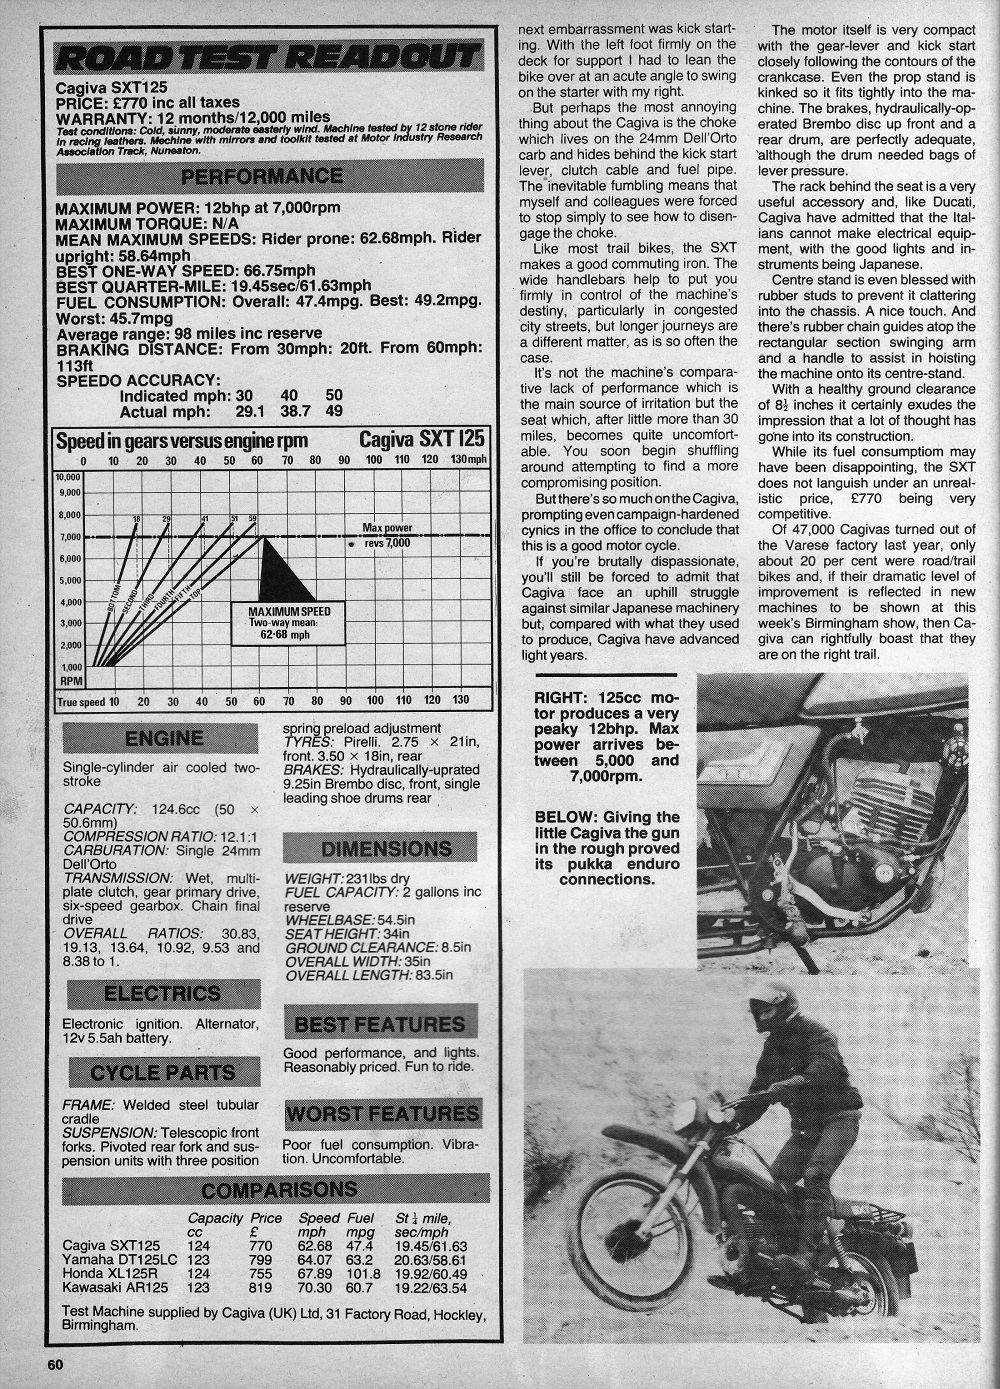 1983 Cagiva STX125 road test.3.jpg